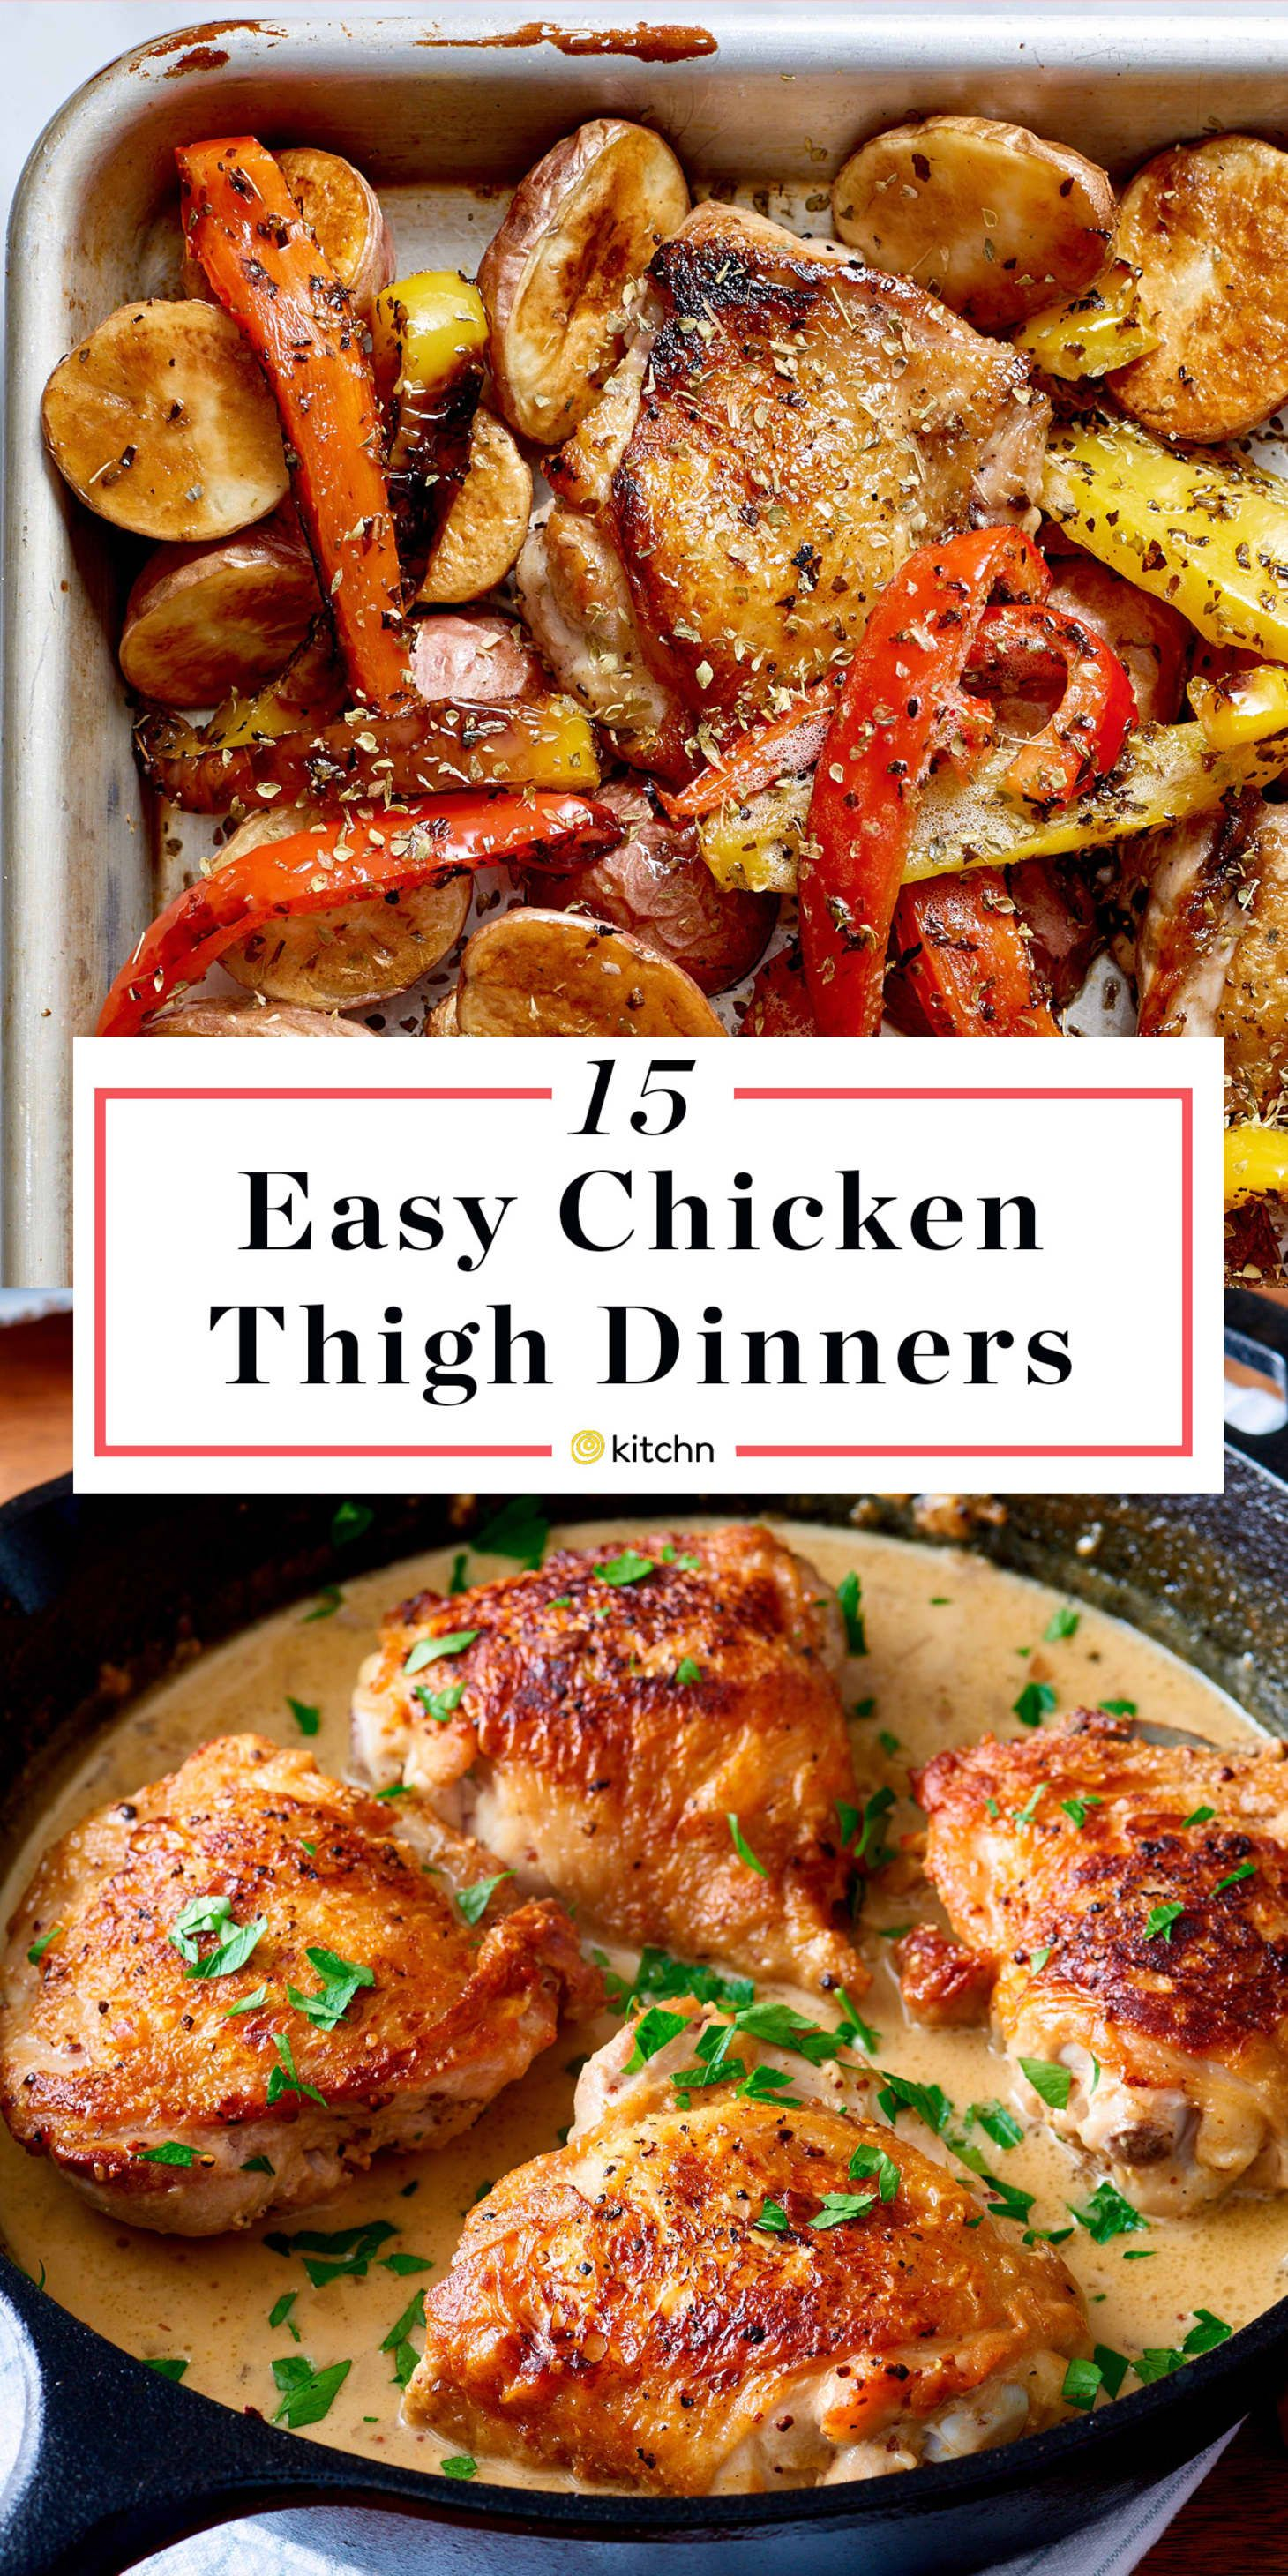 The Easiest Chicken Thigh Recipes For Busy Weeknights